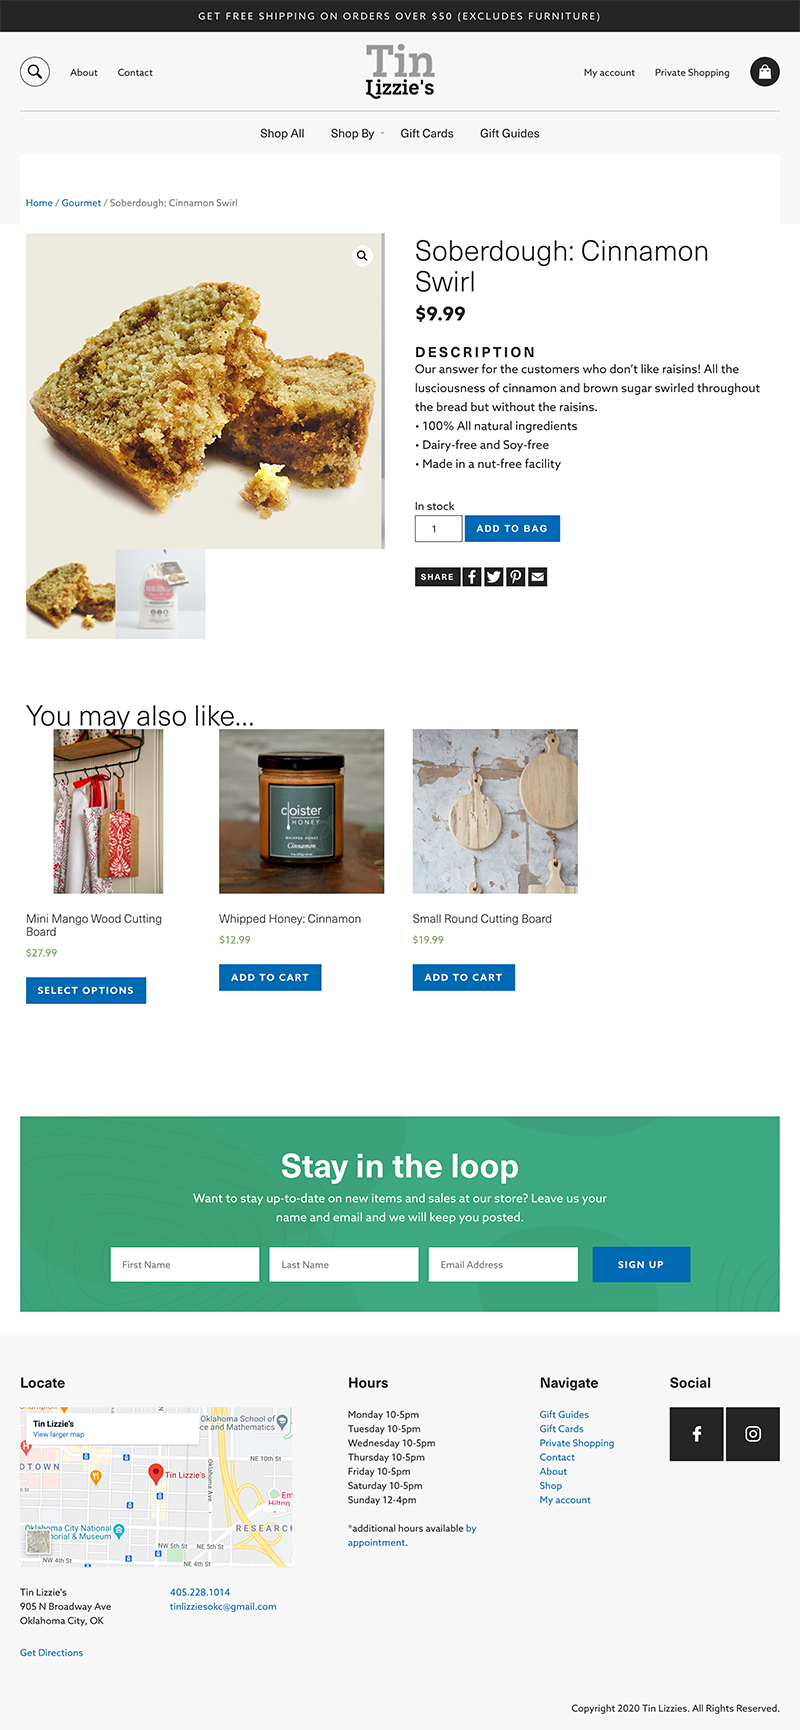 Screenshot of the Tin Lizzies product detail page built in WordPress by GGC Digital